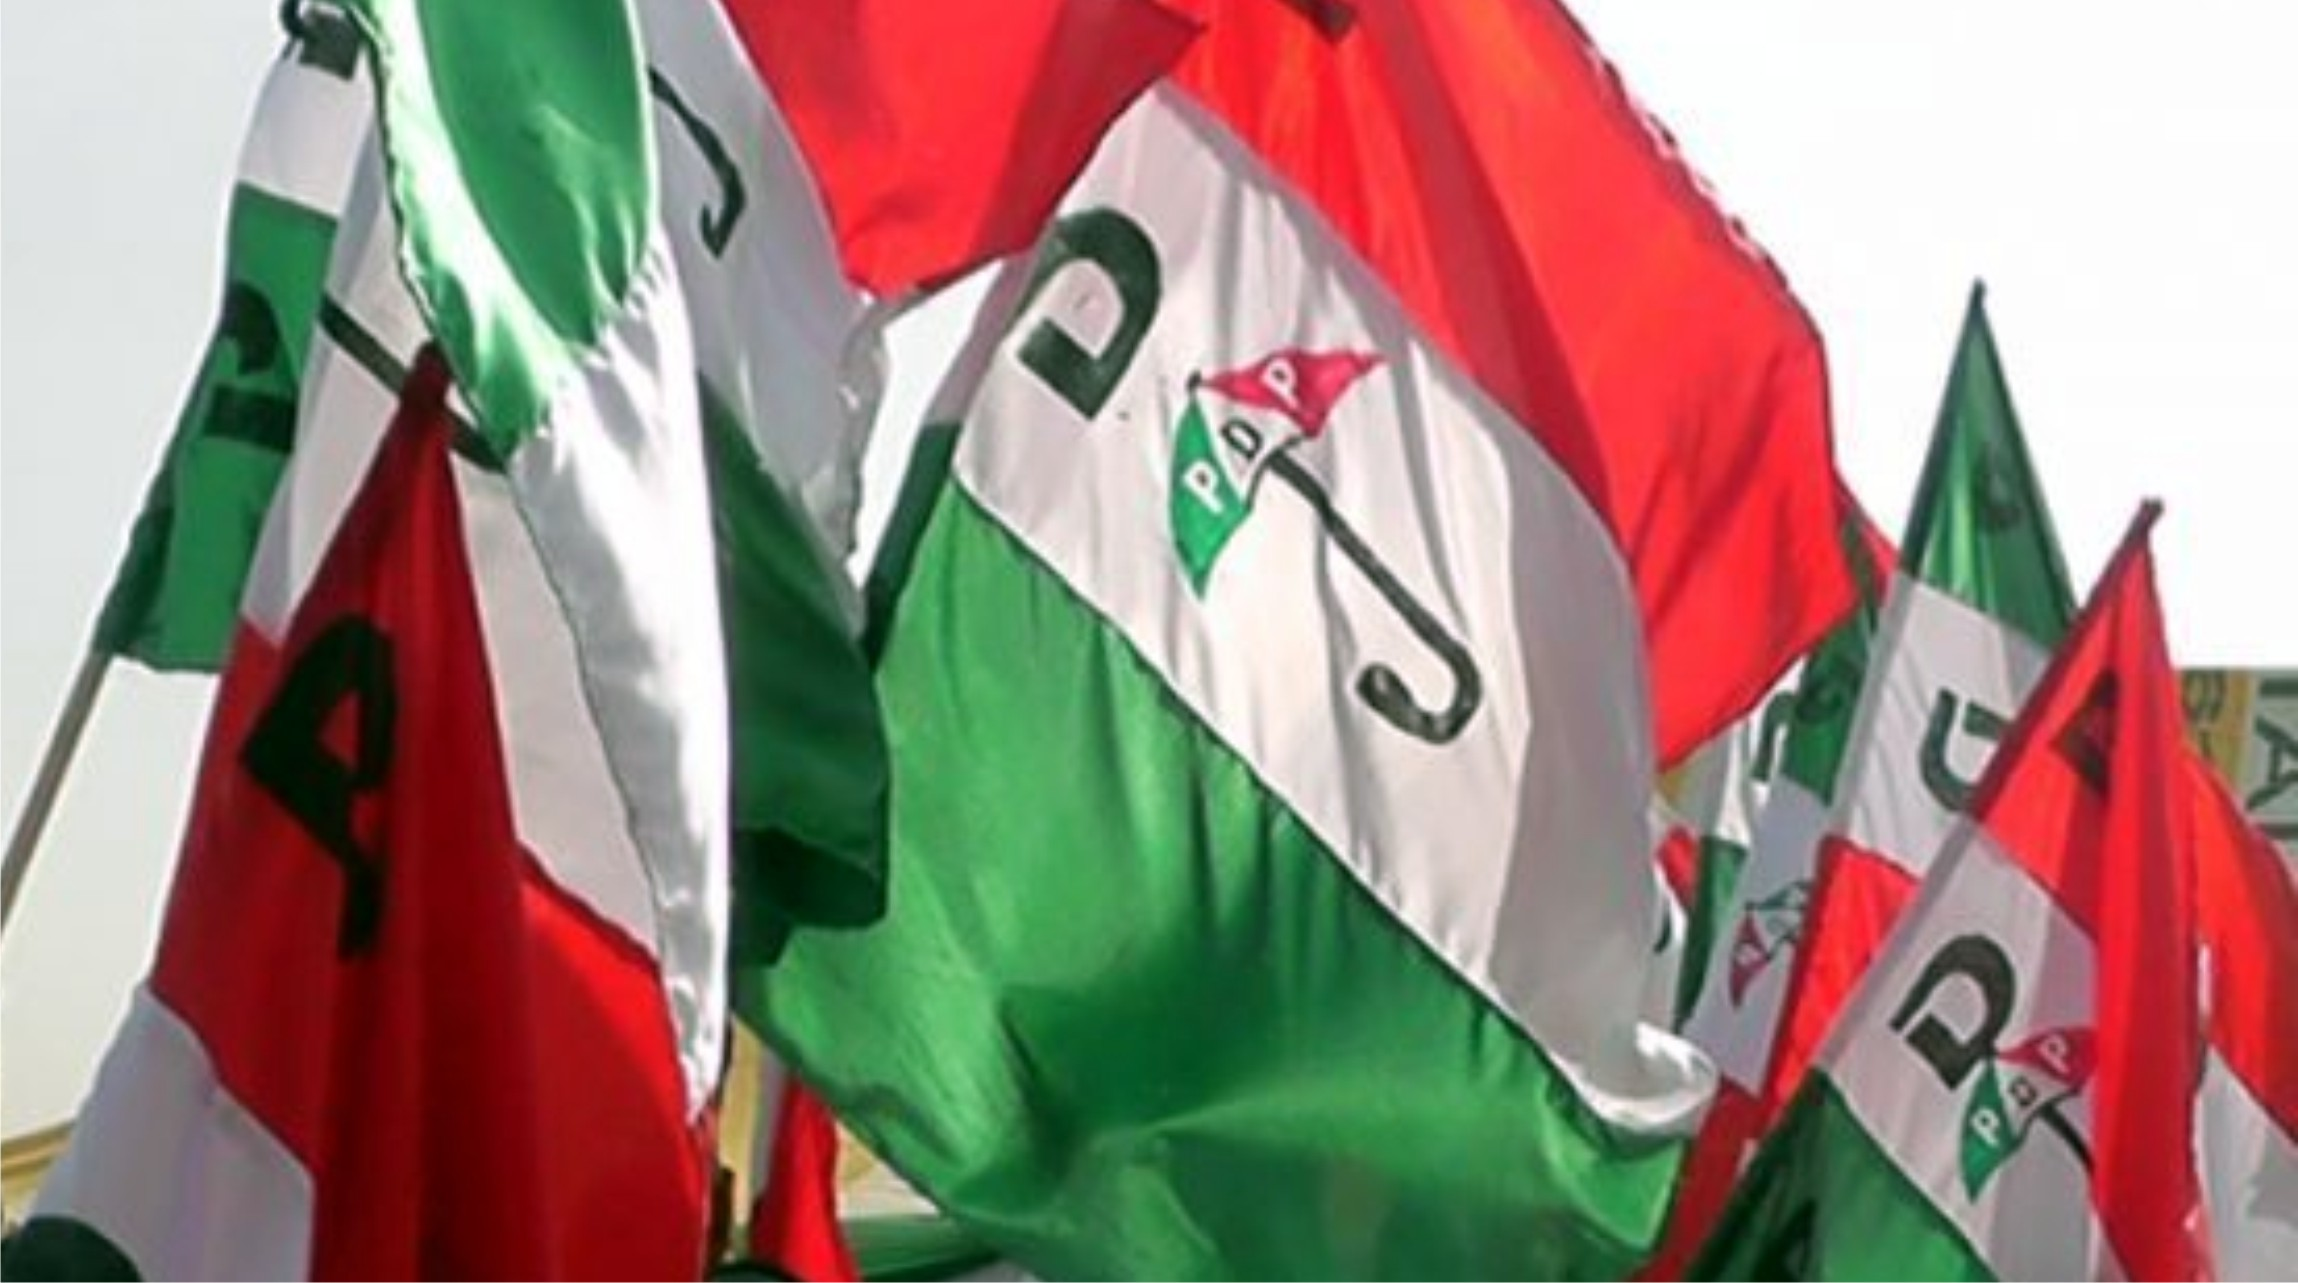 PDP Accuses APC Of Promoting Violence In Edo